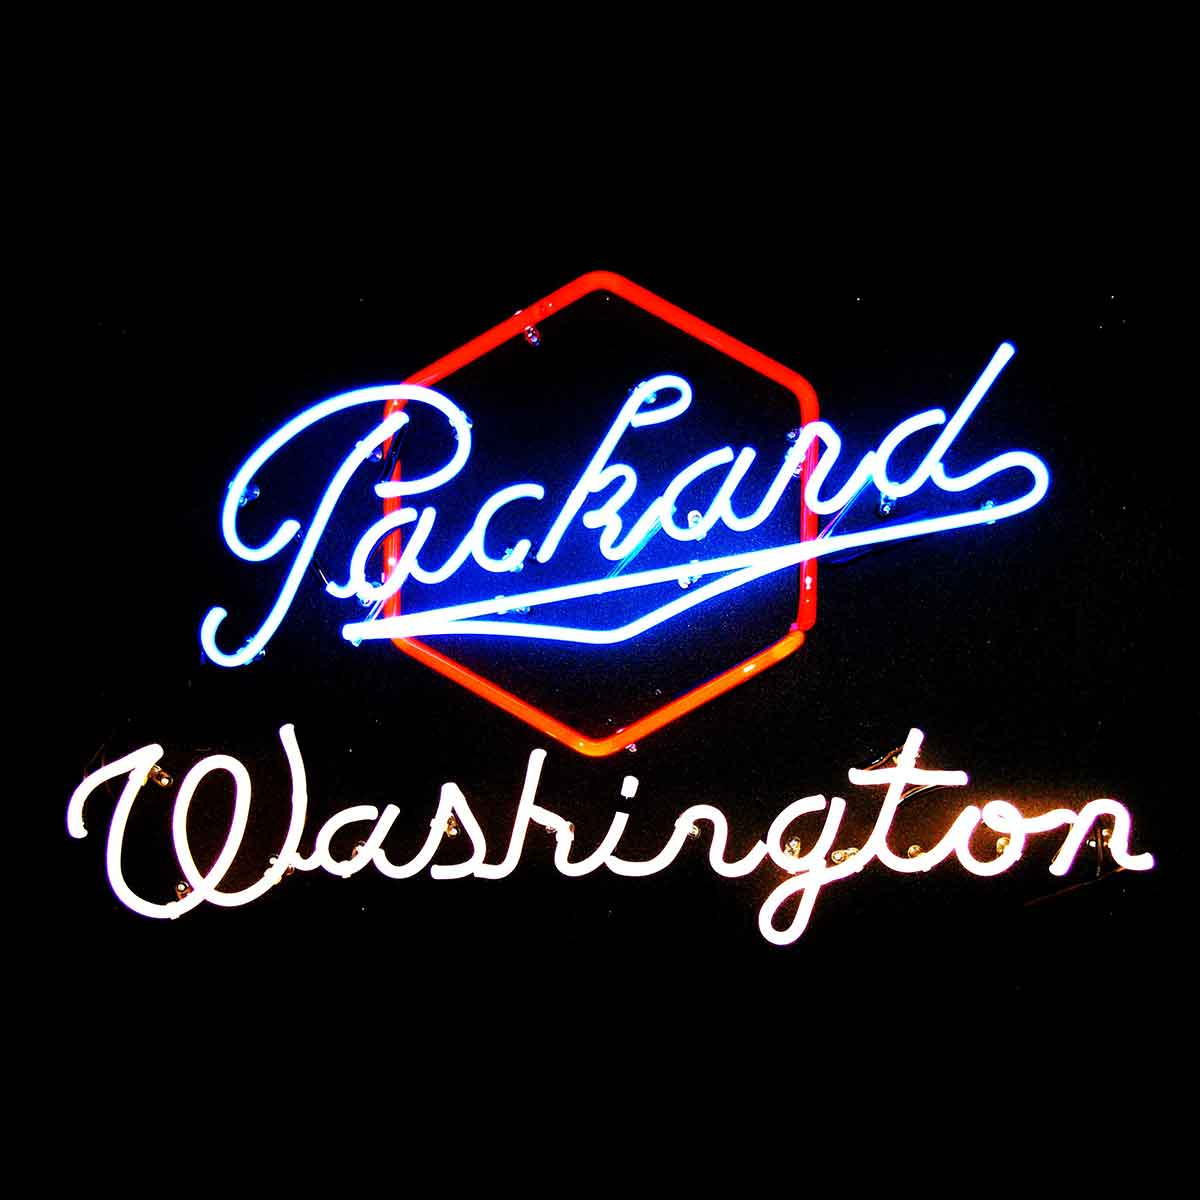 Packard-Washington-1200x1200.jpg